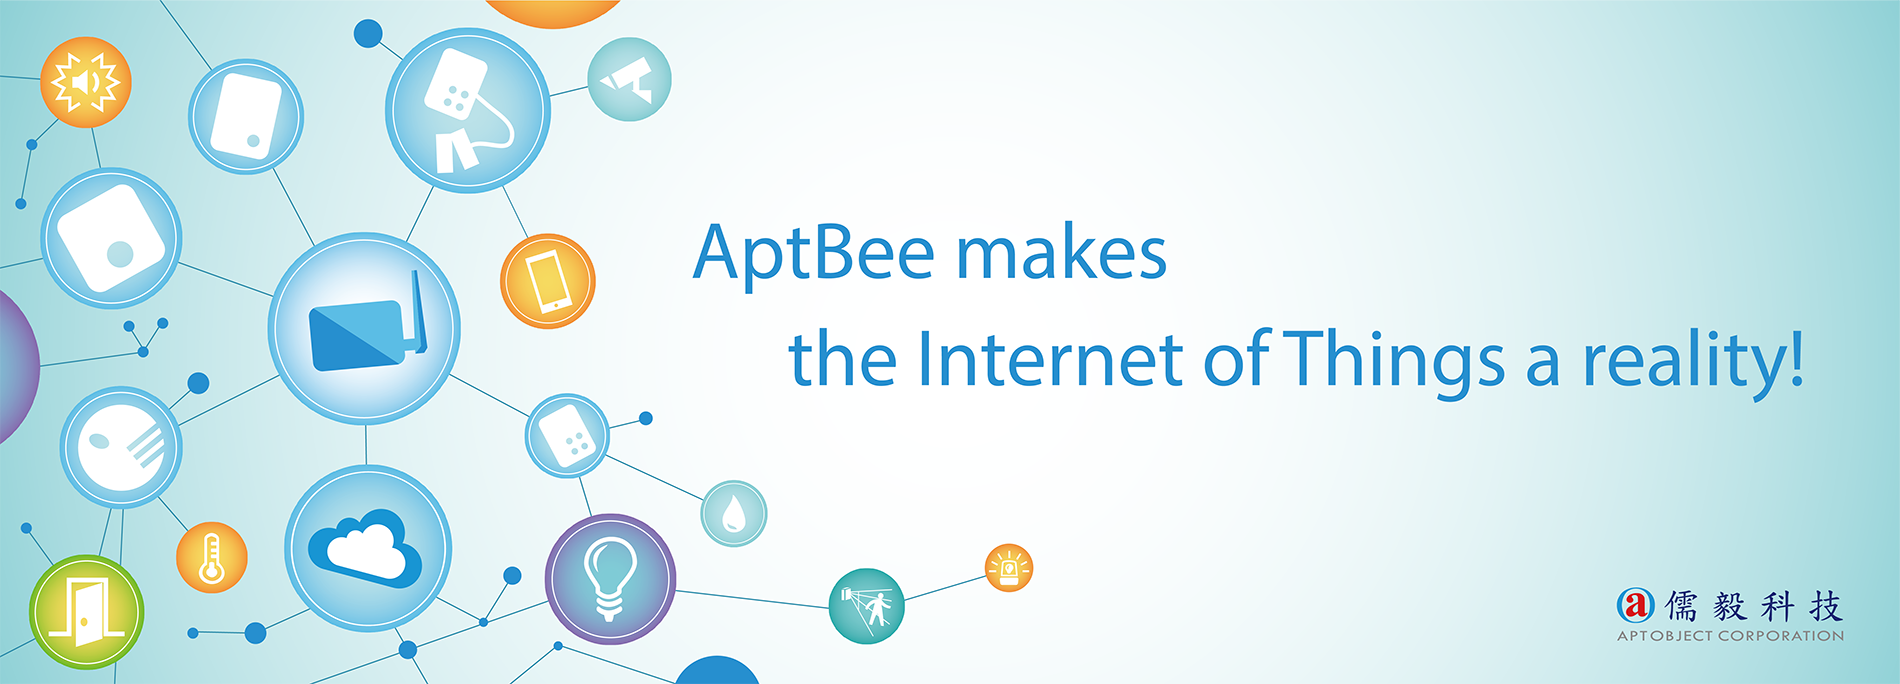 AptBee WSN Application System